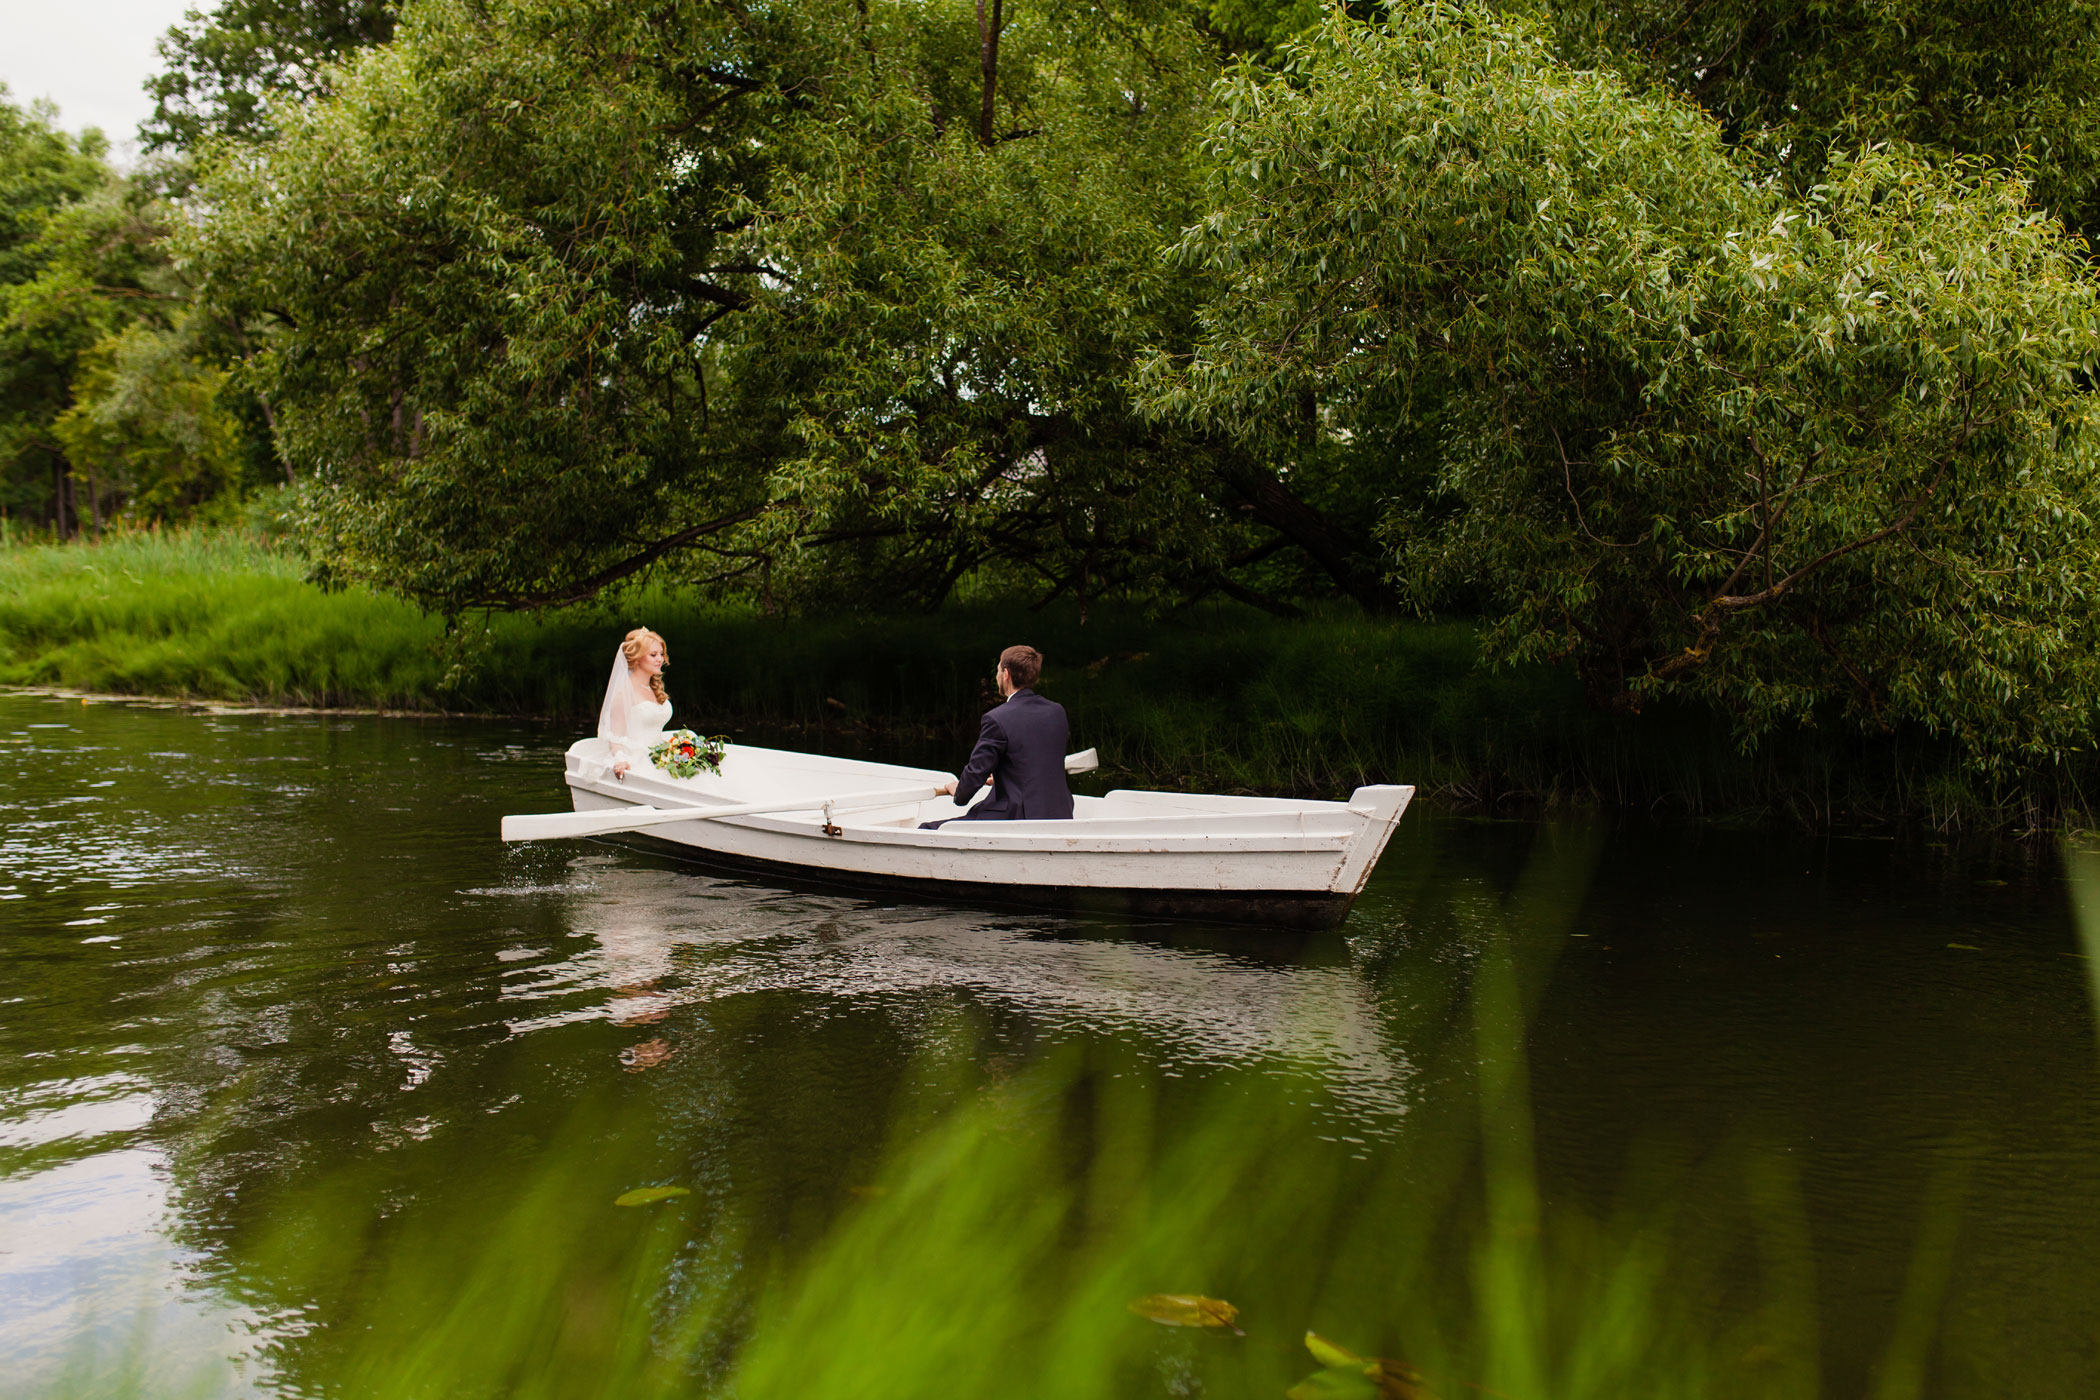 wedding-boatsmall.jpg